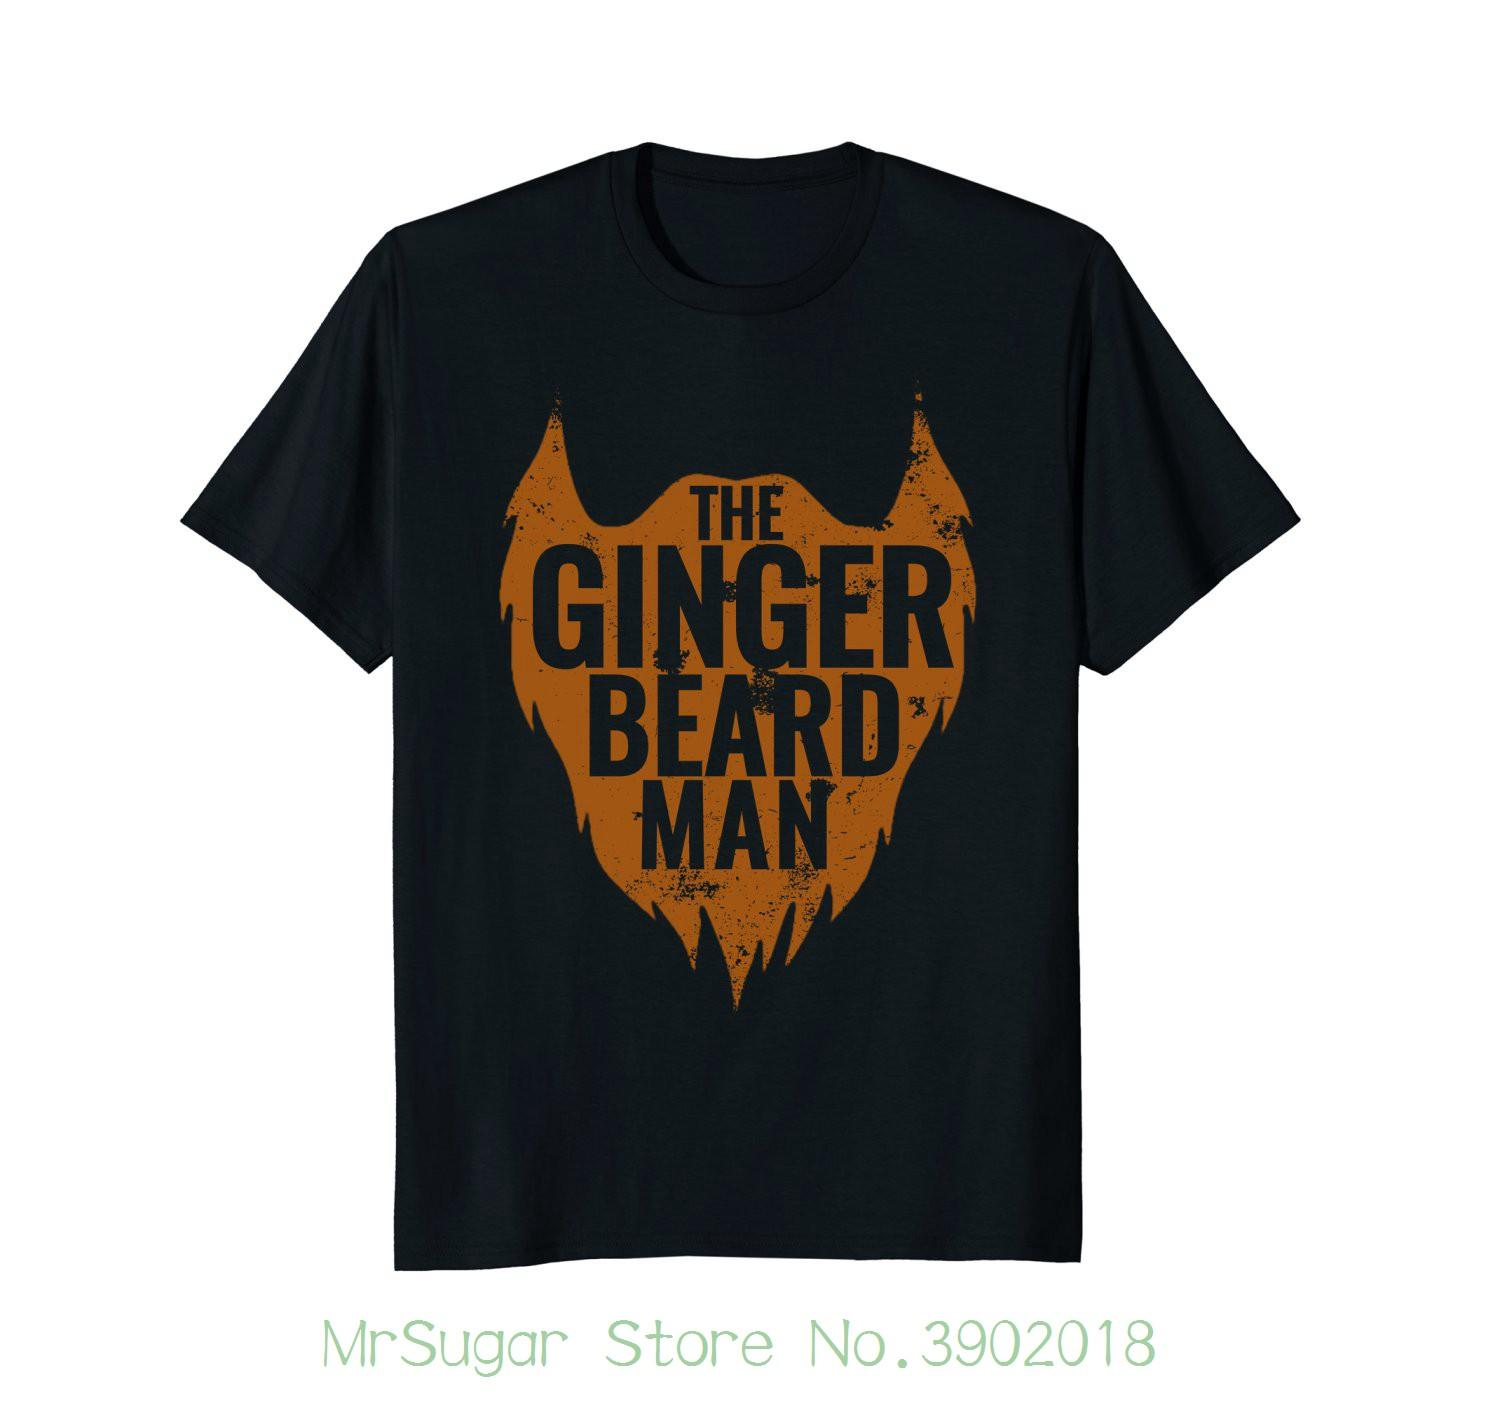 a880b2d5b1ca8d The Ginger Beard Man - Vintage Beard Shirt New Mens Spring Summer Dress  Short Sleeve Casual Online with  15.38 Piece on Mrsugarstore s Store